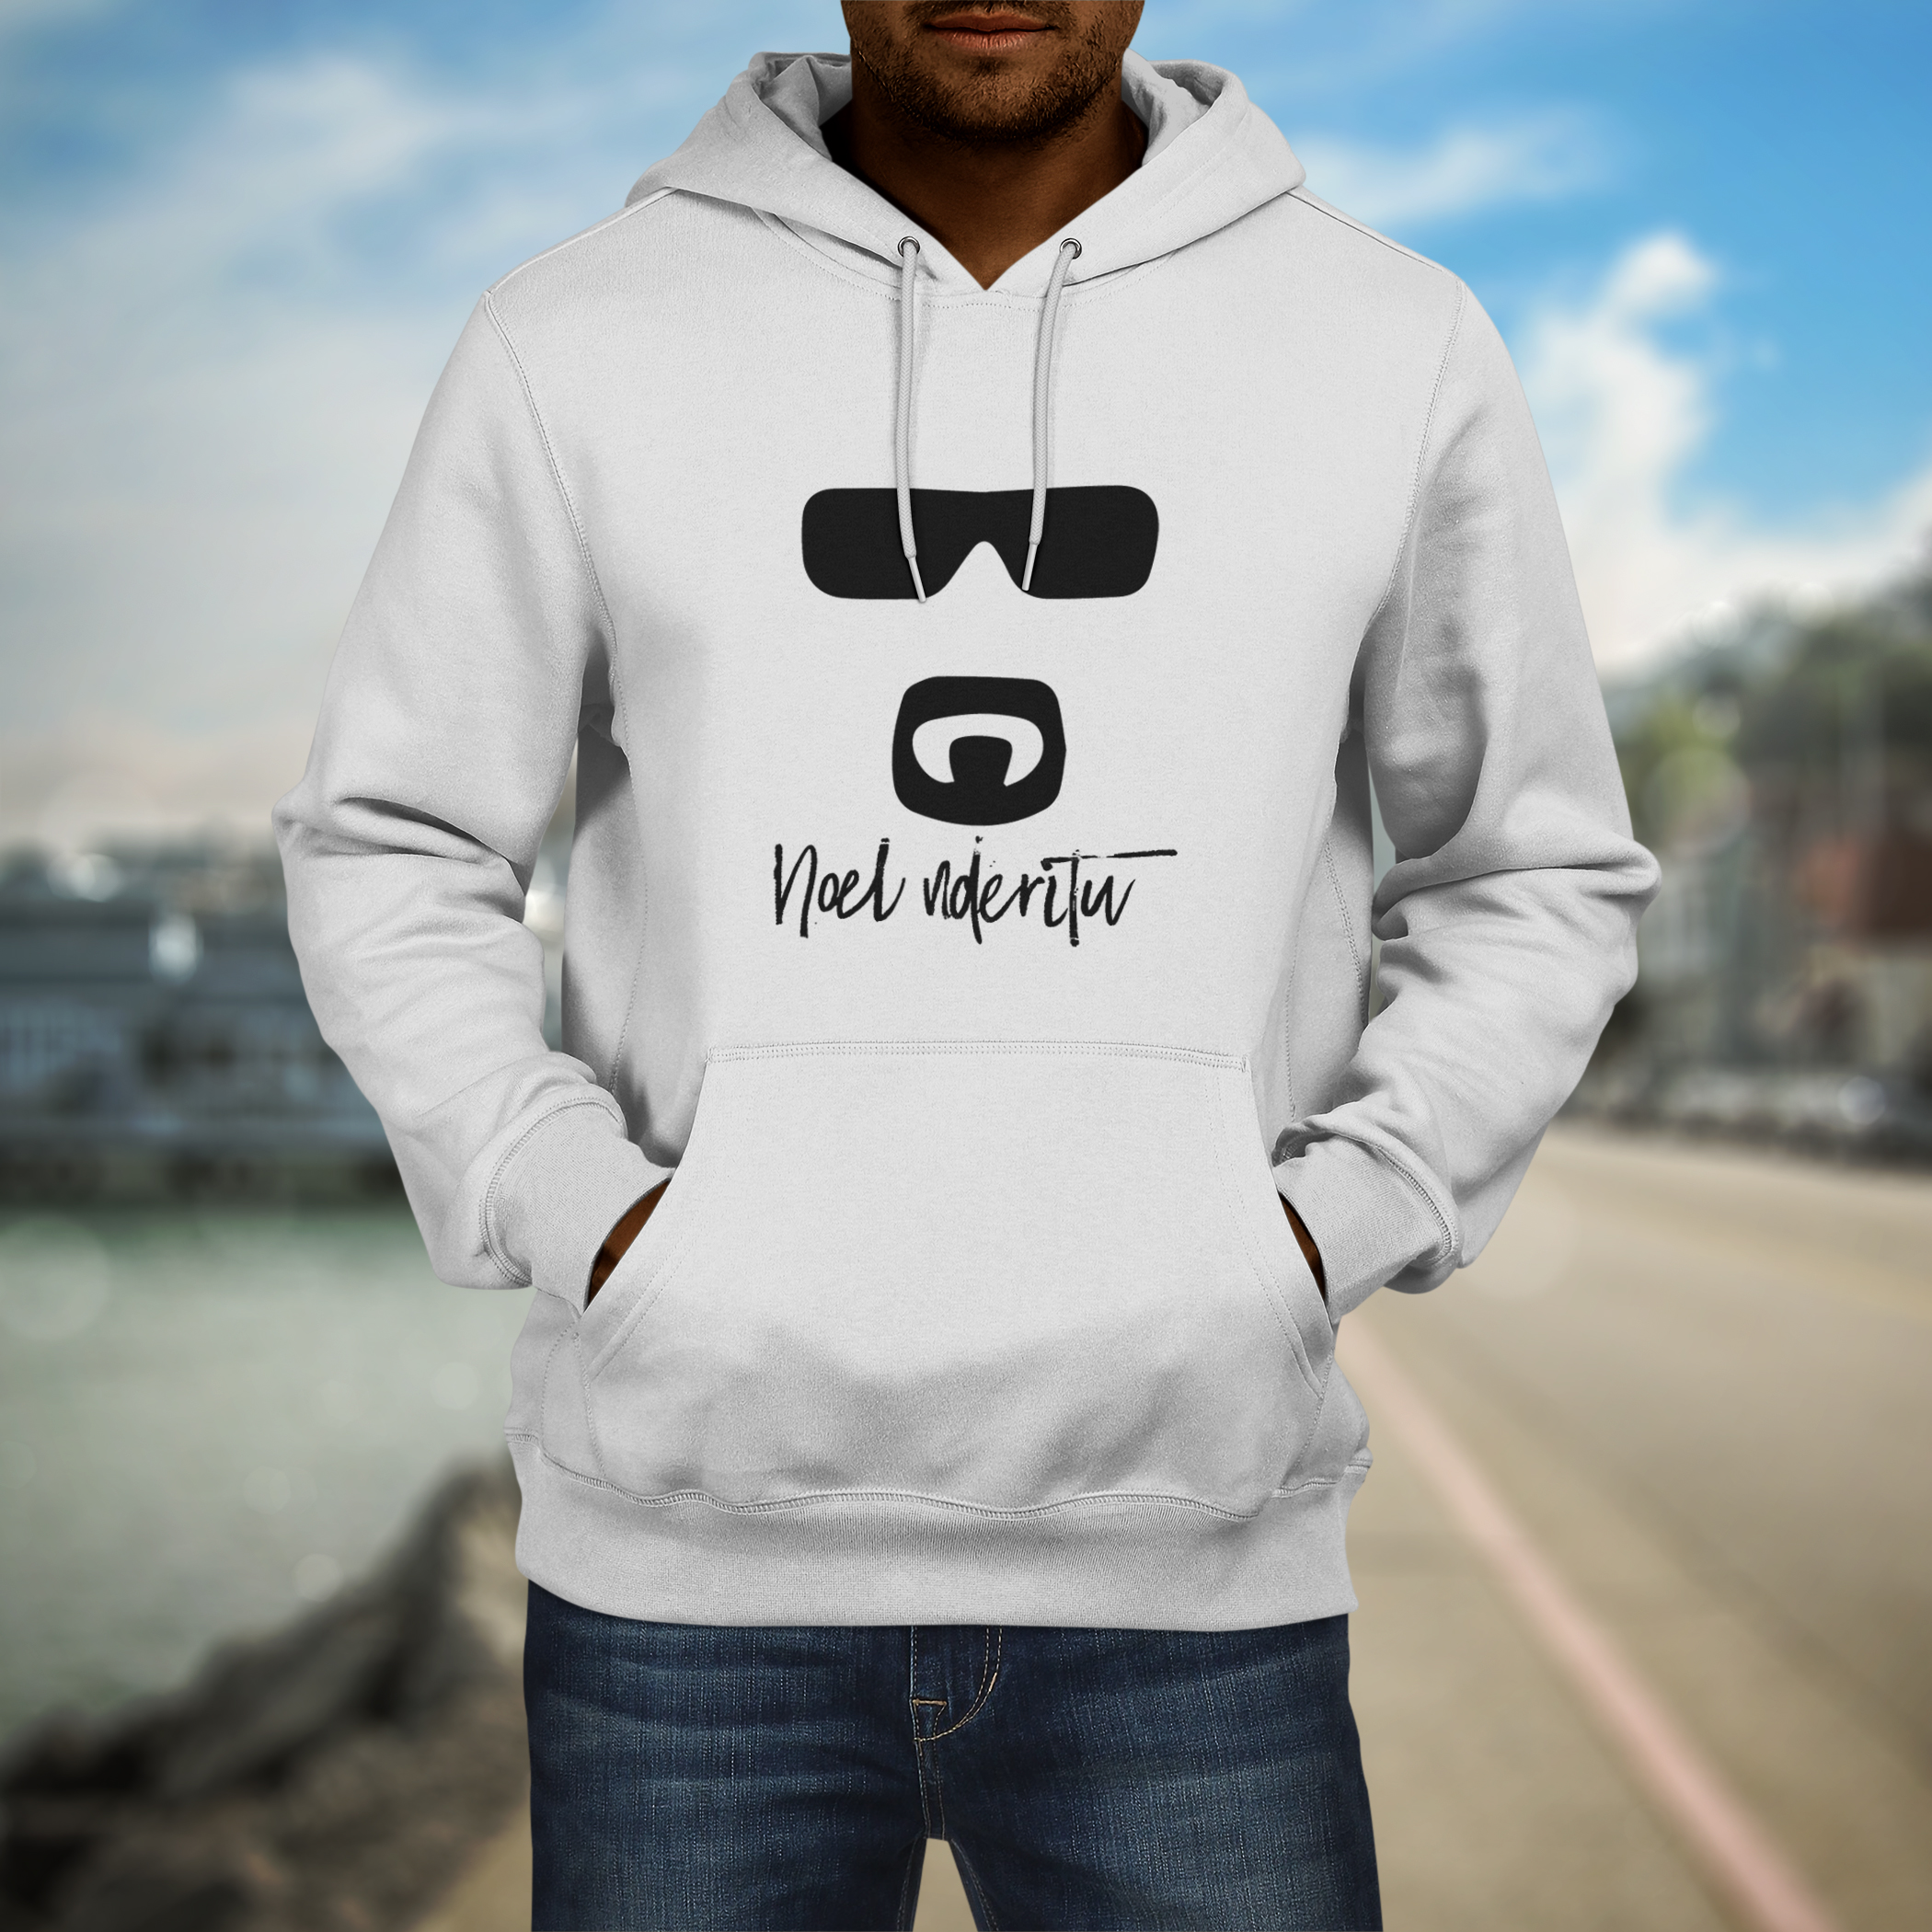 Hoodies @ KSH. 2,000 (Available in BLACK AND WHITE)